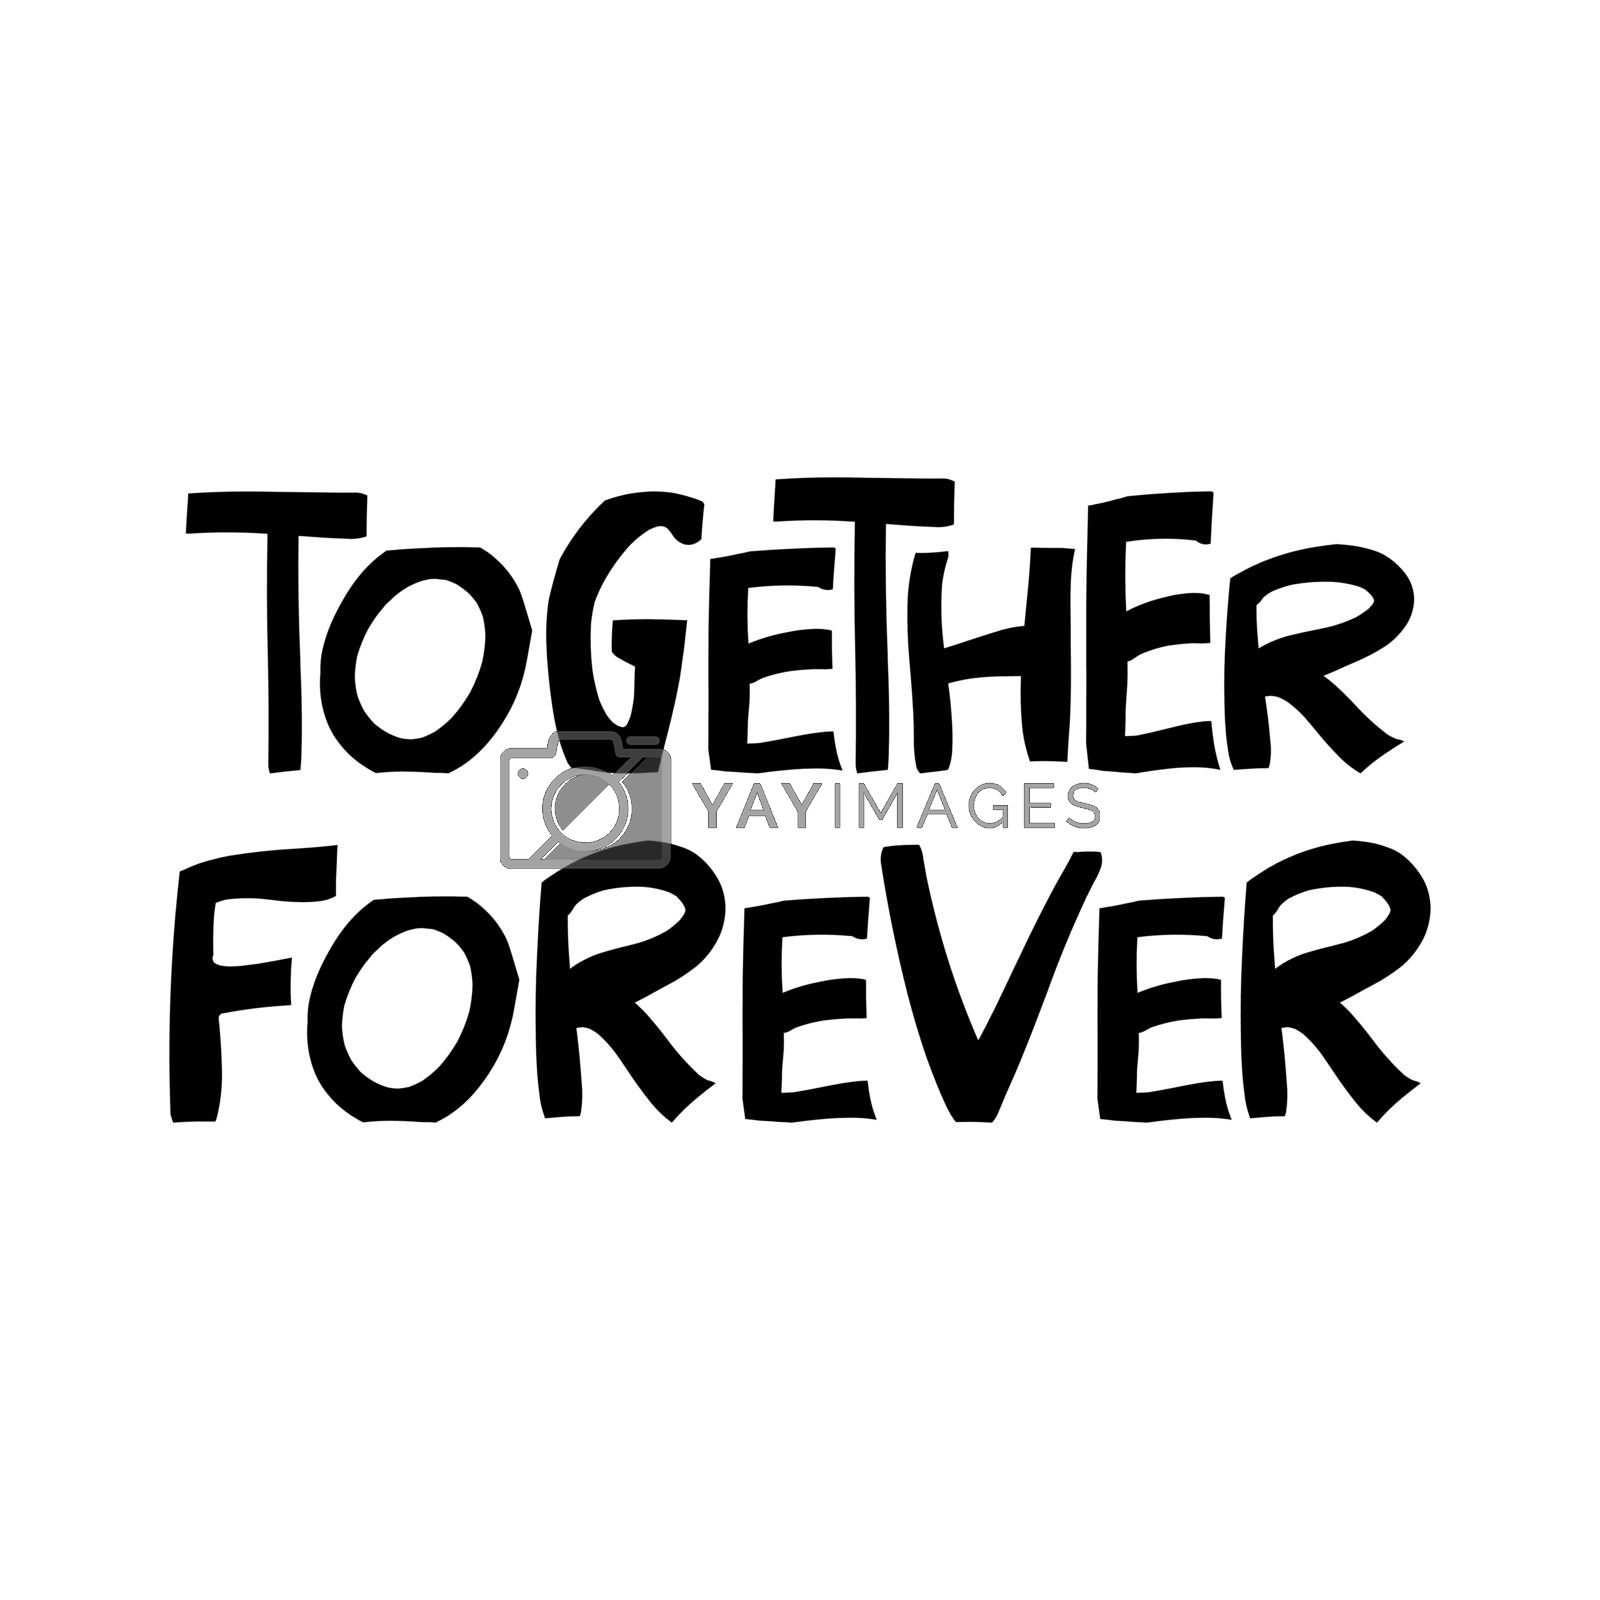 Together forever. Cute hand drawn lettering in modern scandinavian style. Isolated on white. Vector stock illustration.